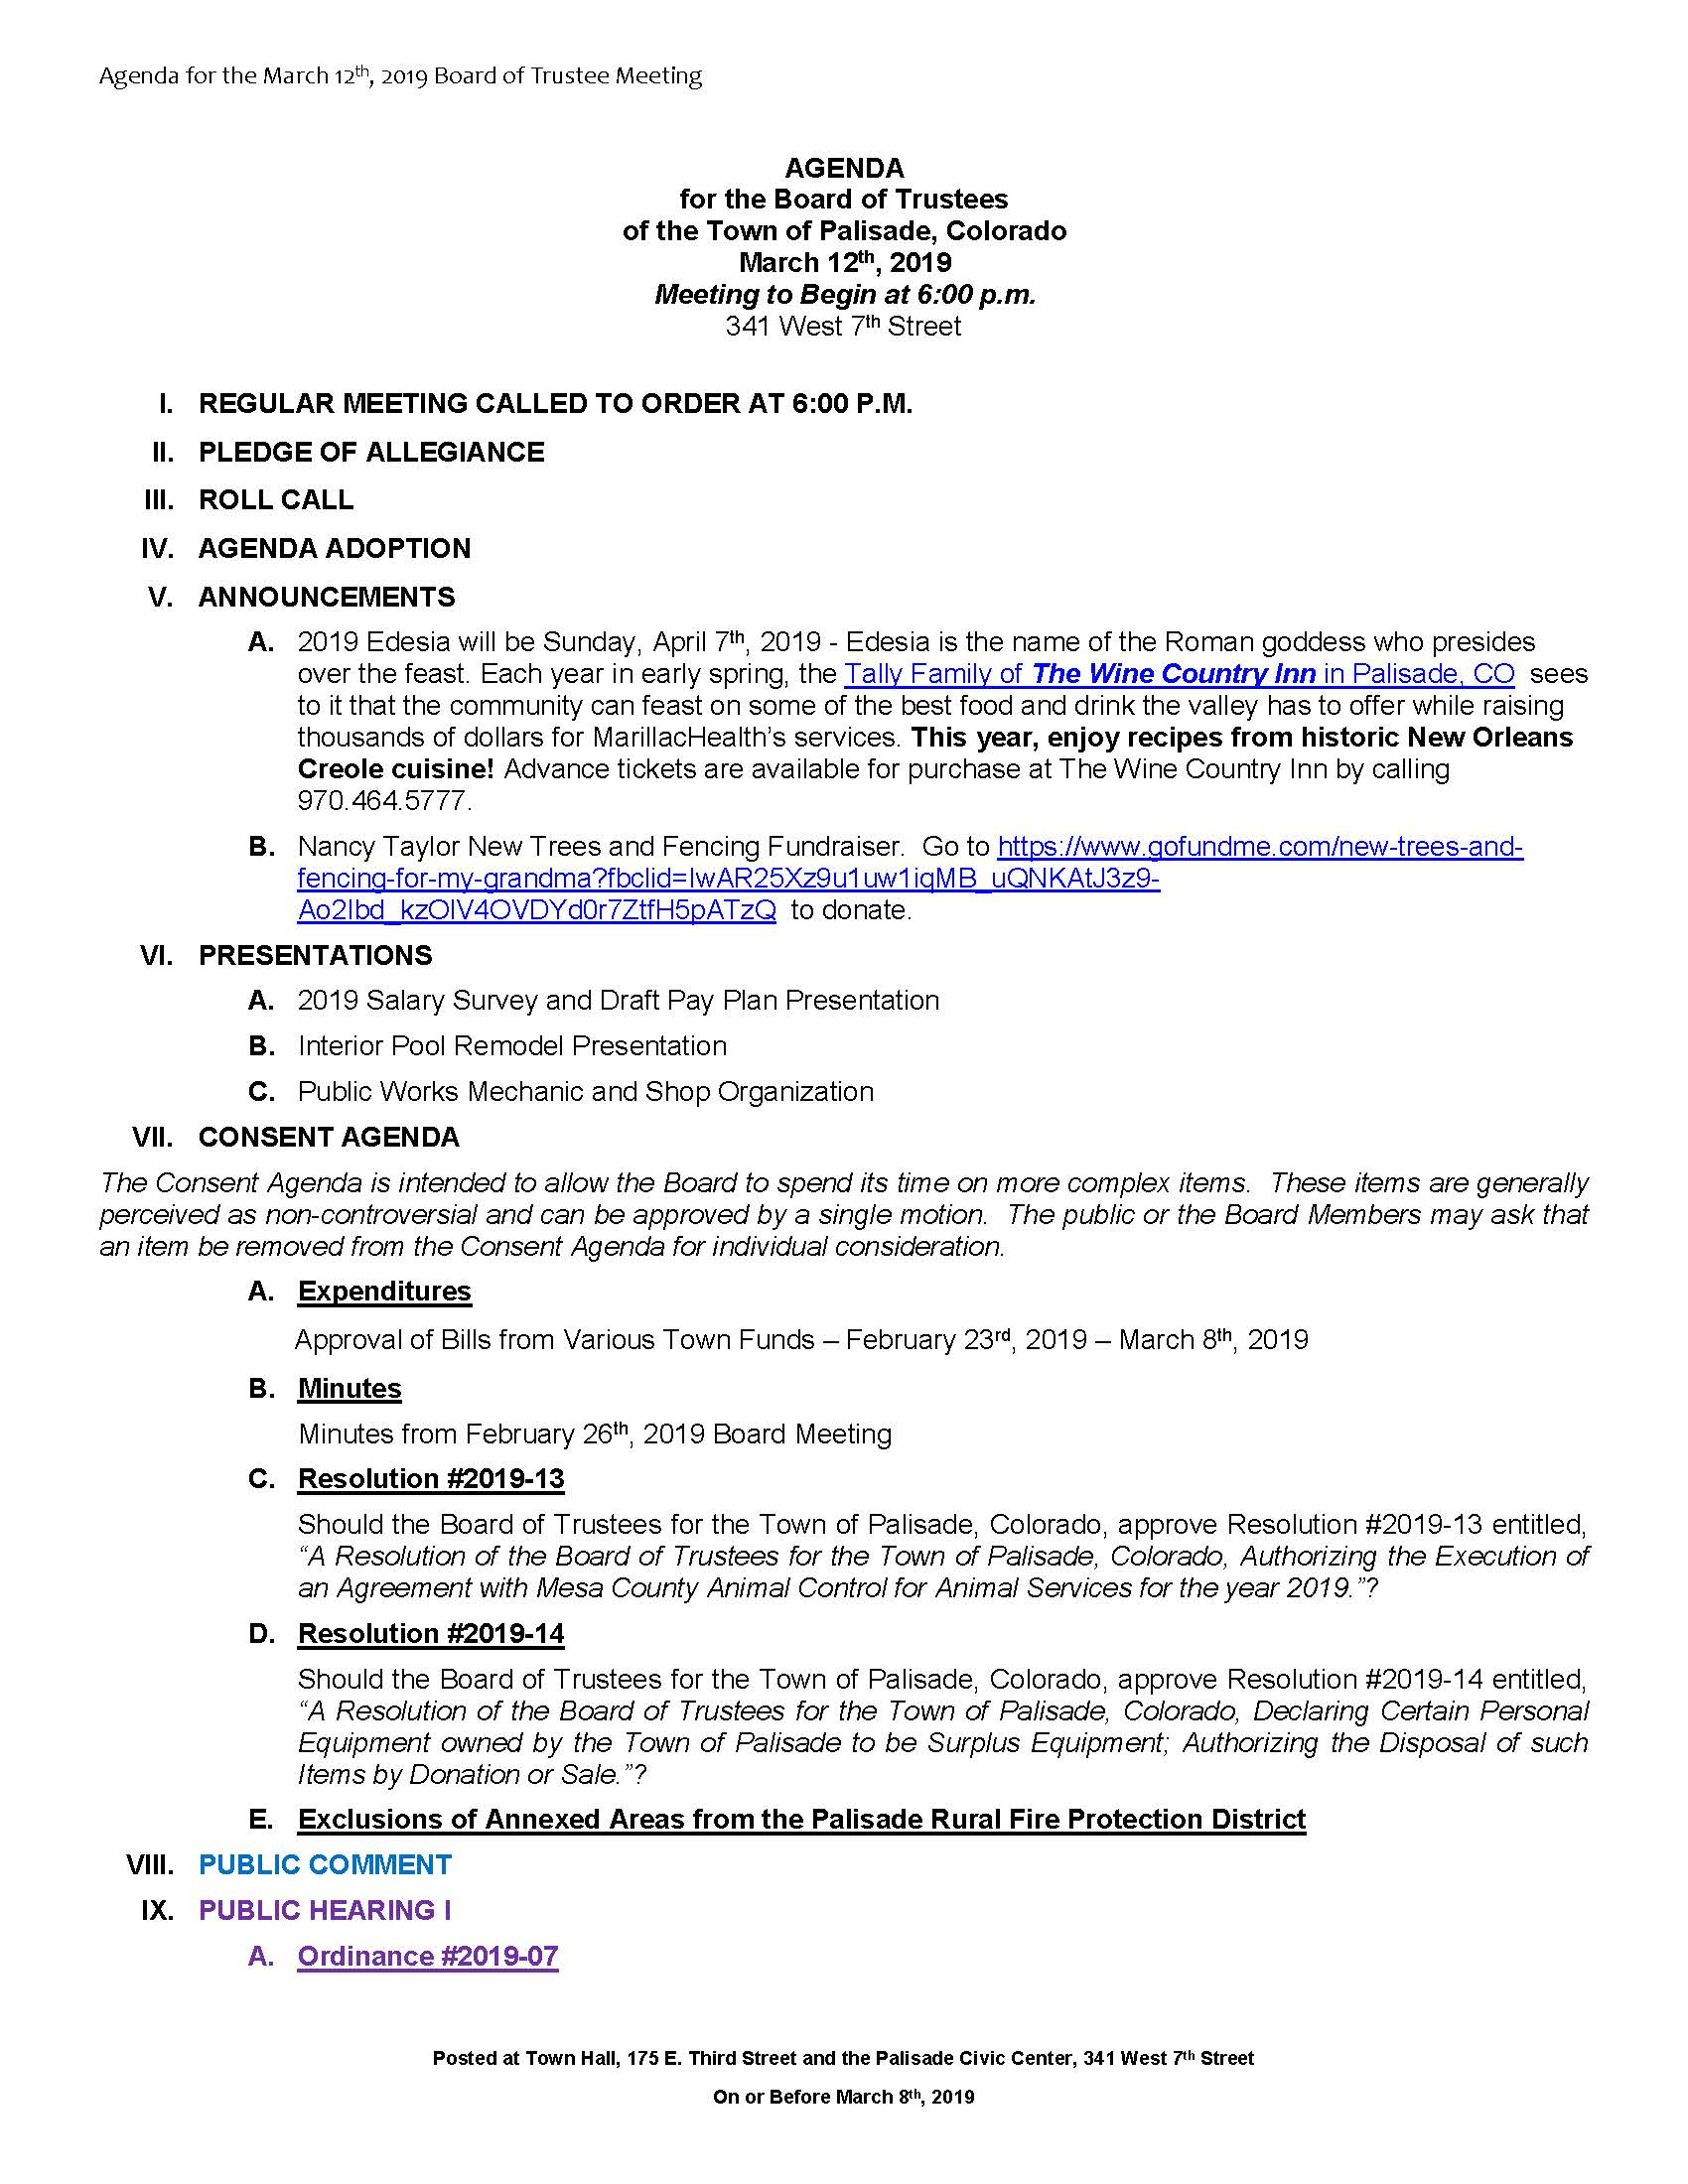 March 12th 2019 Board Meeting Agenda Page 1